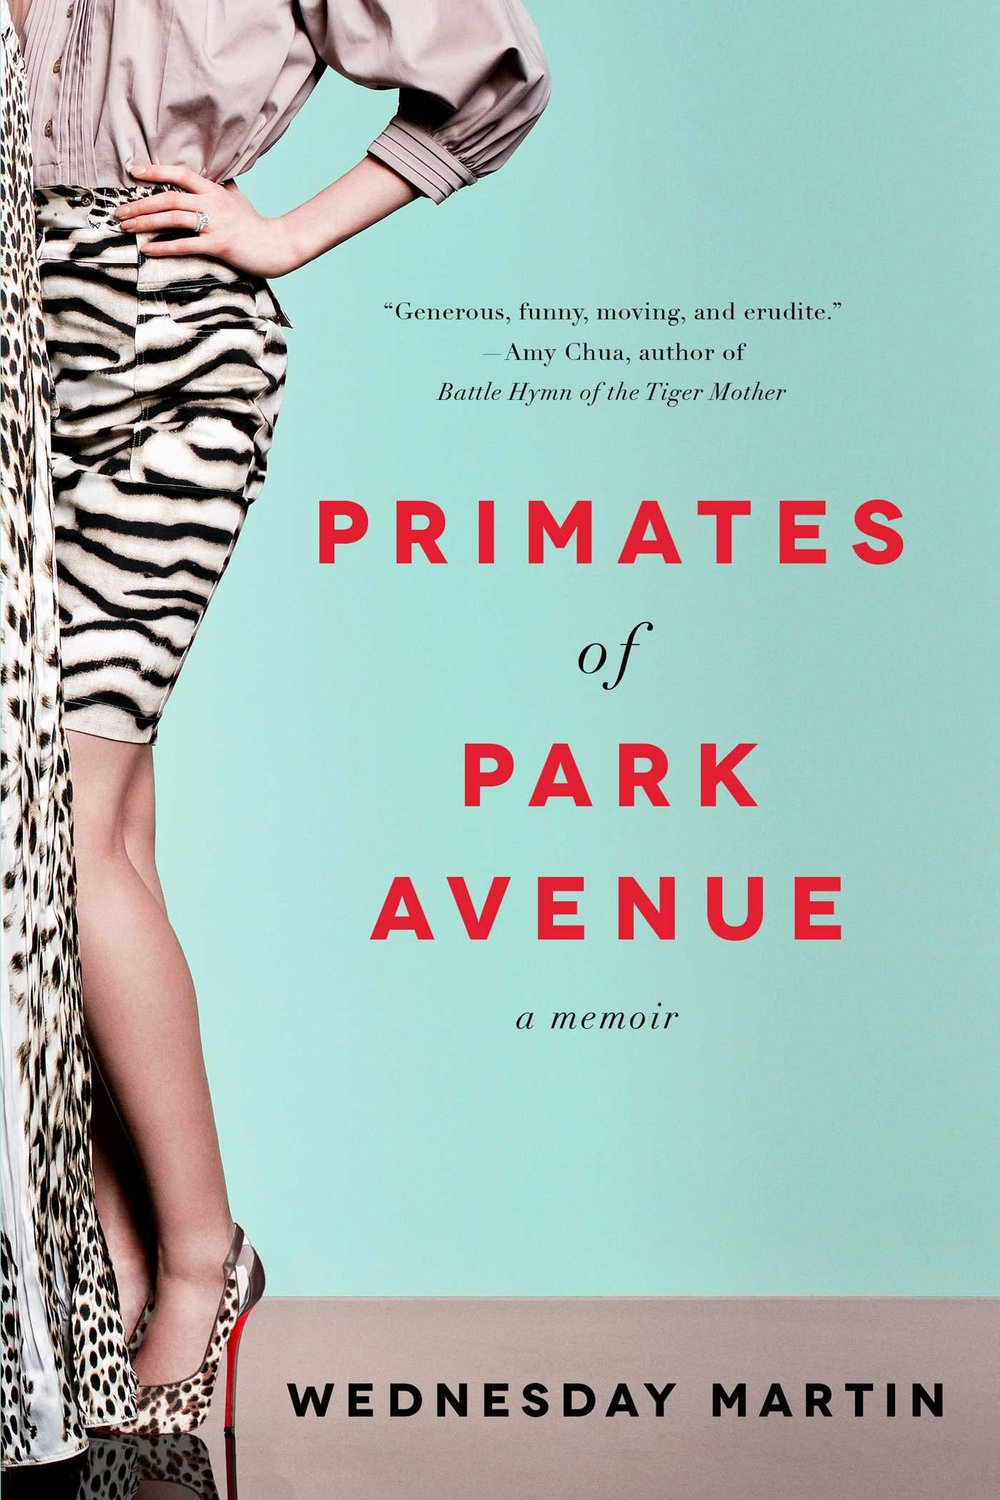 Primates of Park Avenue.jpg